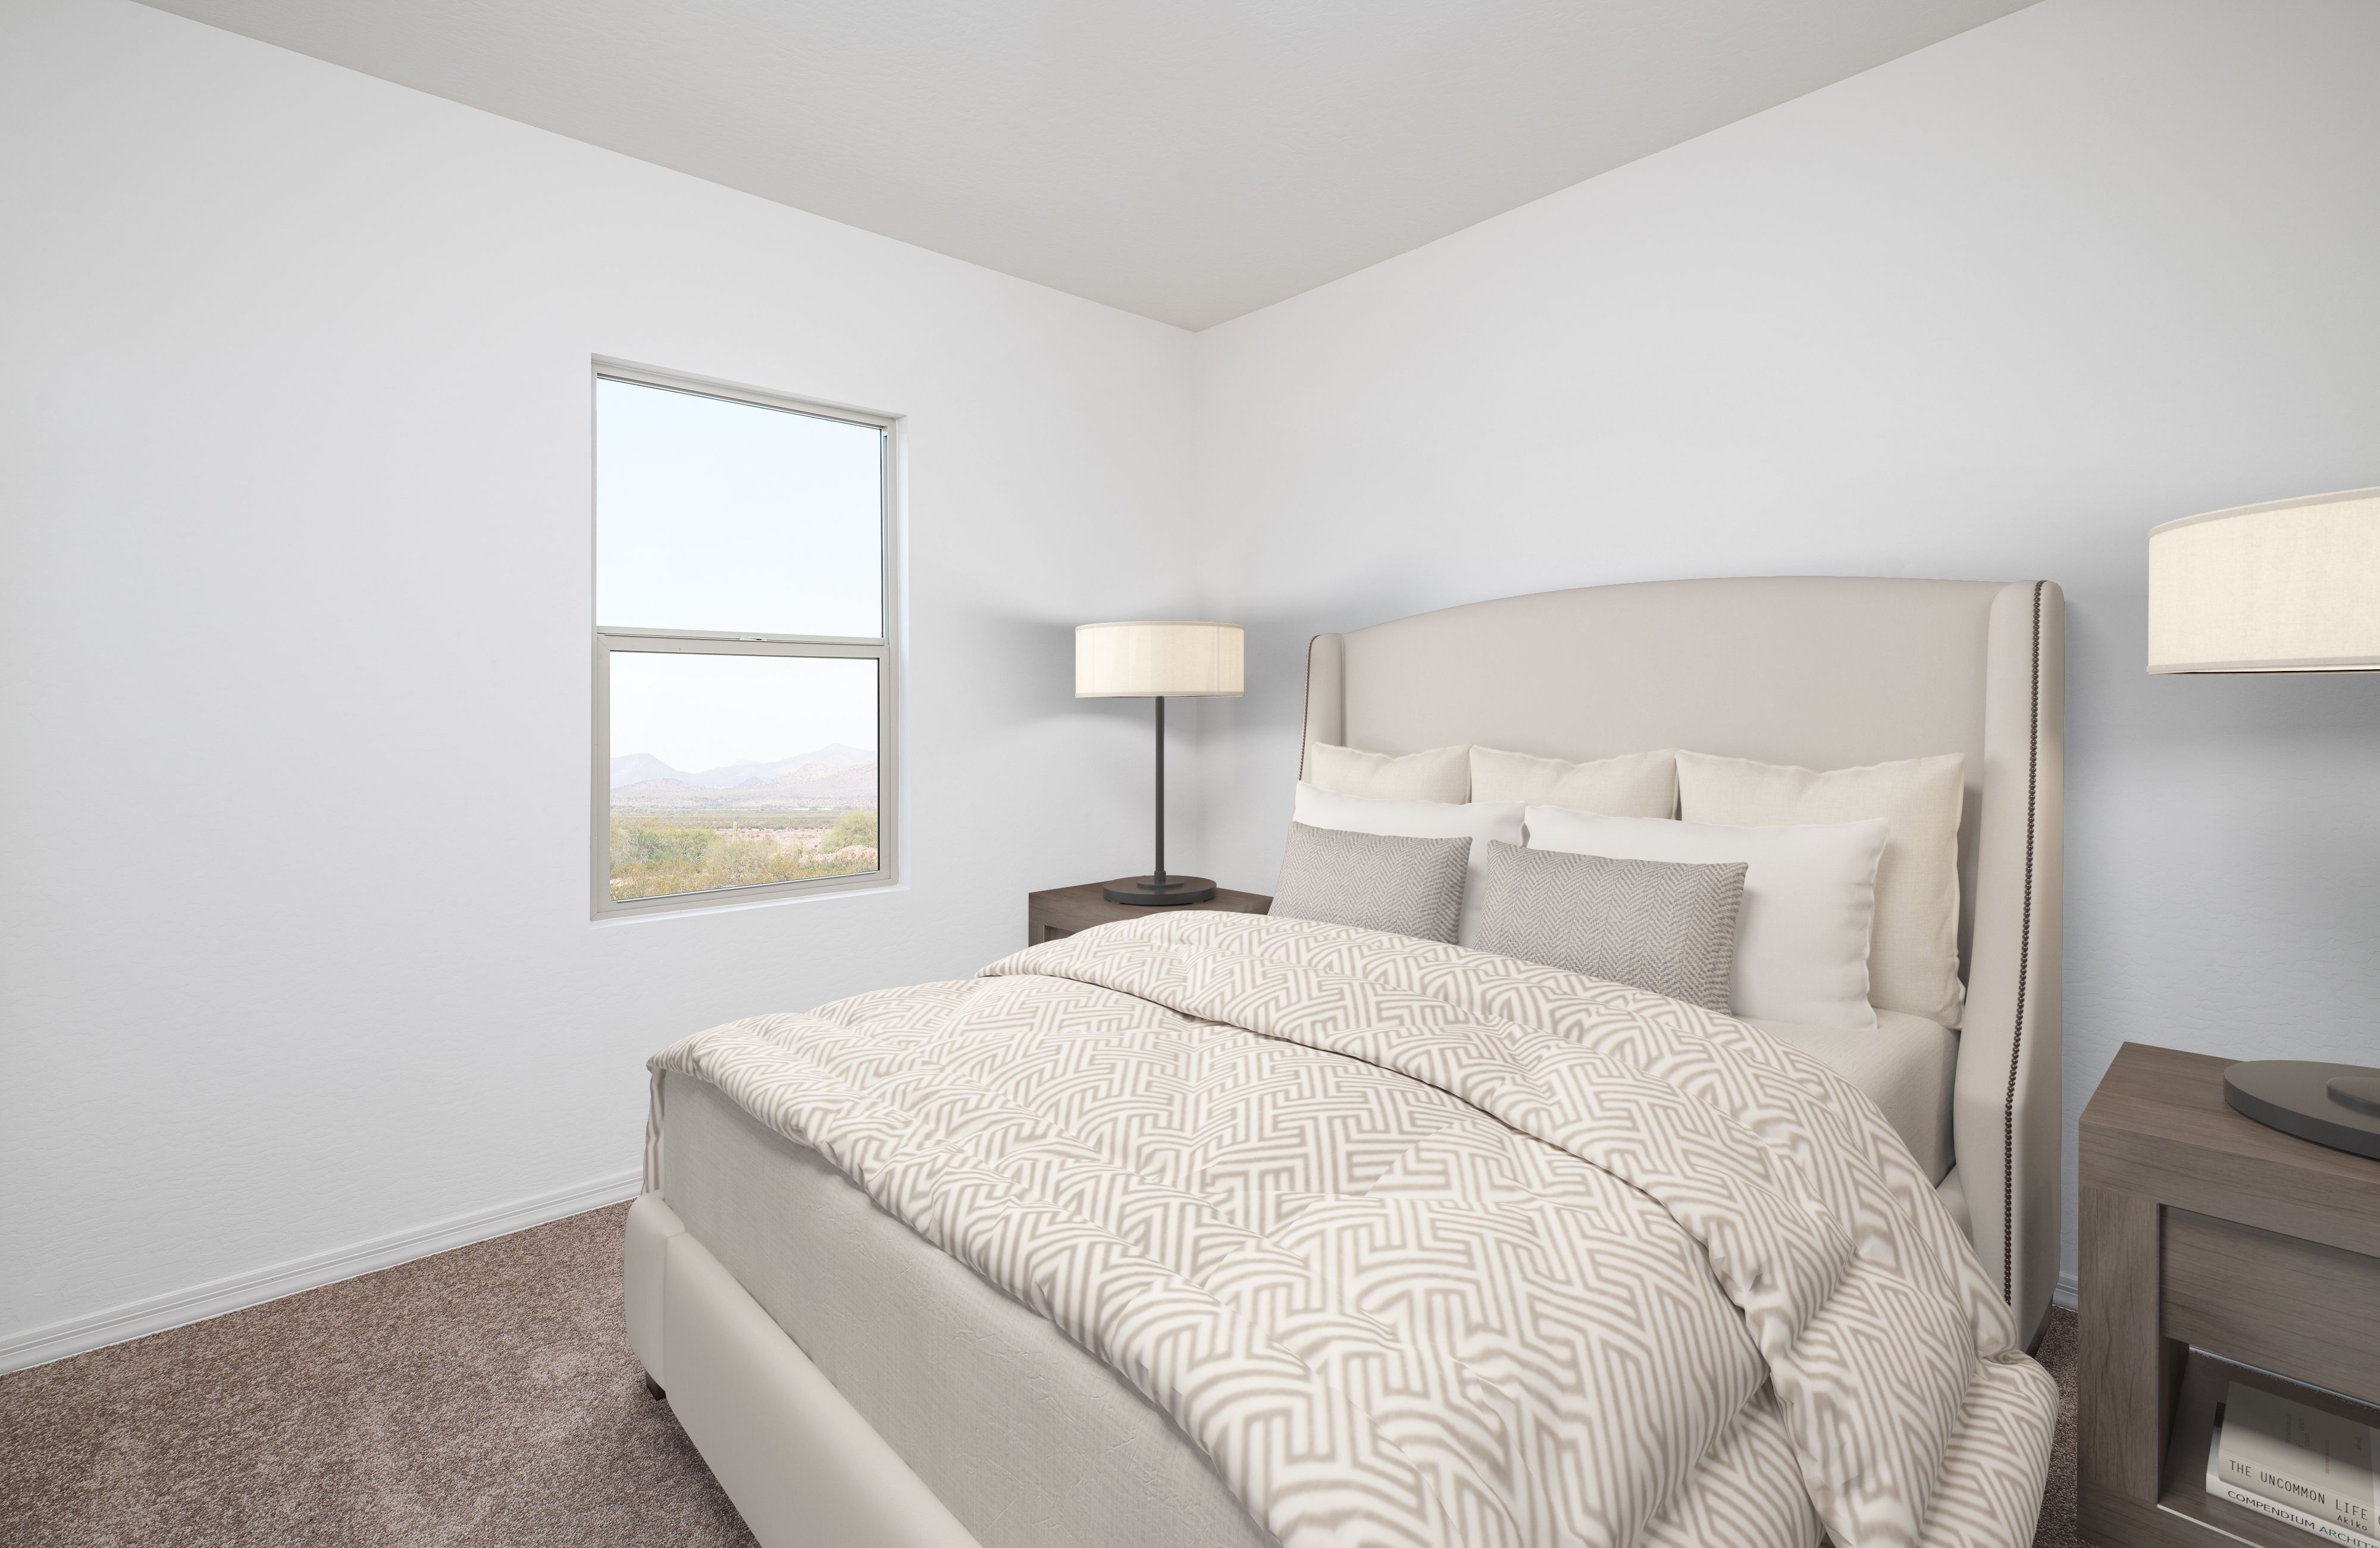 Bedroom featured in the Comet By Starlight Homes in San Antonio, TX